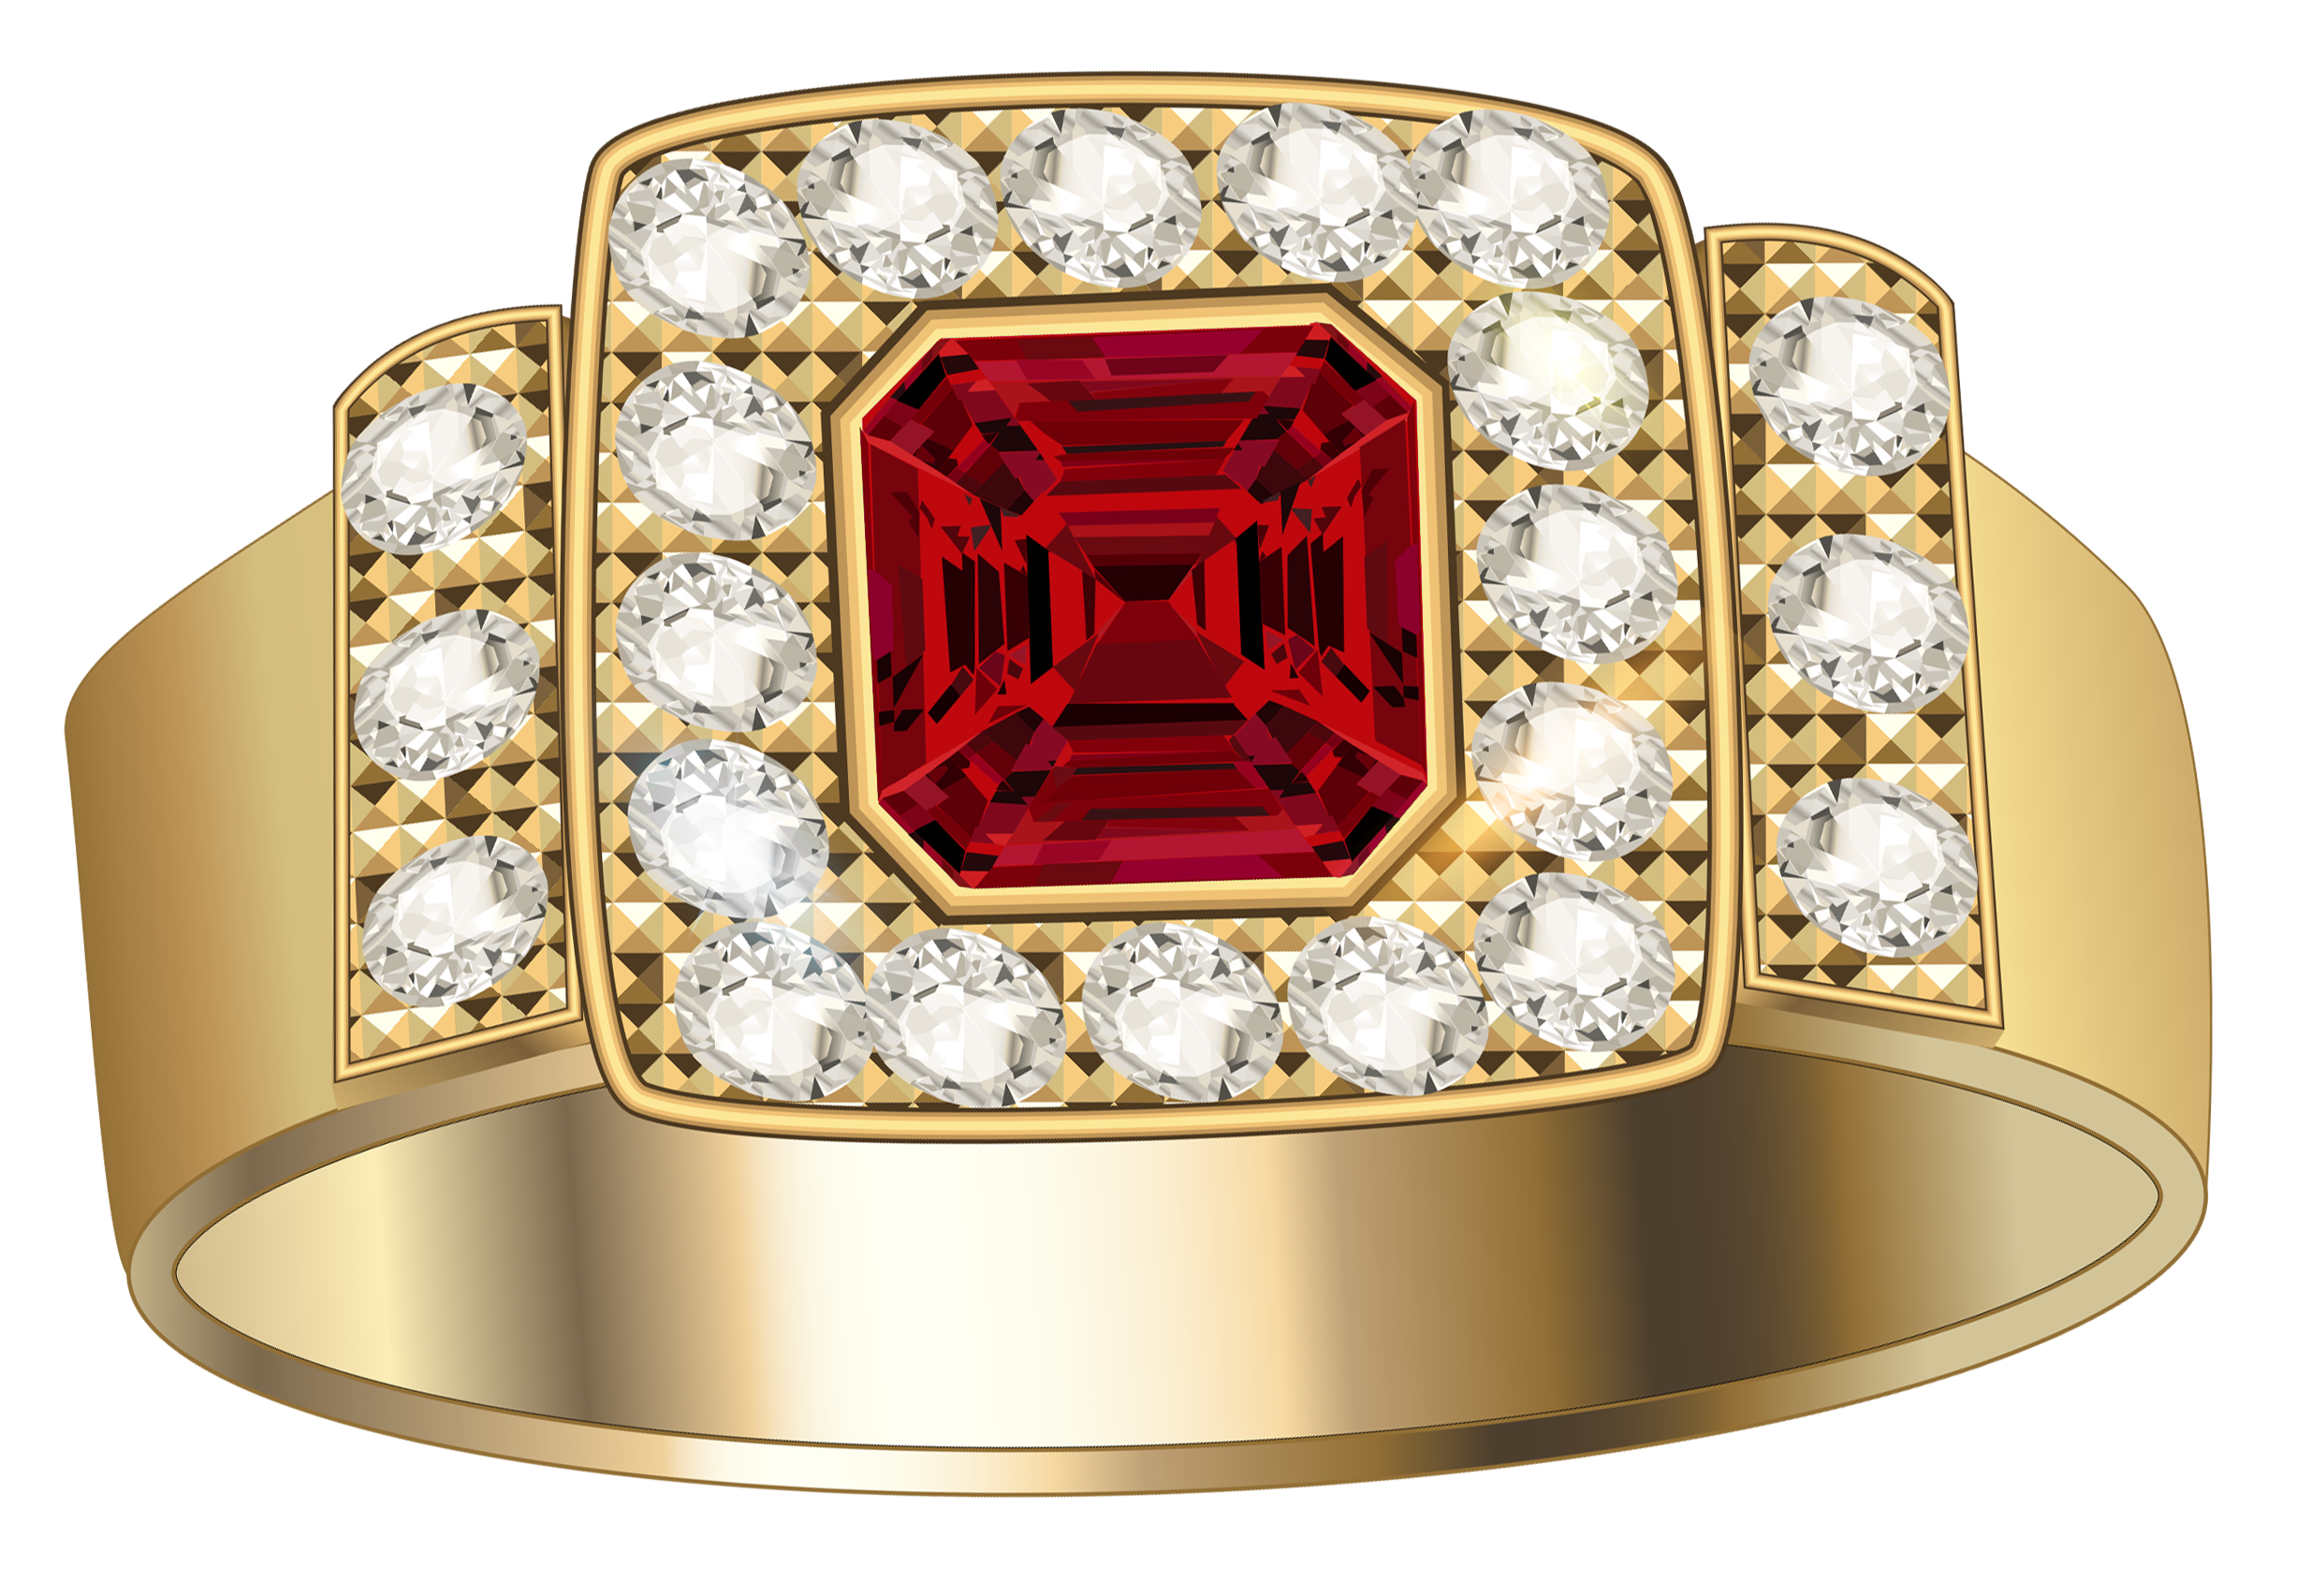 Gold Ring With Diamonds Png Image Gold Rings Golden Ring Diamond